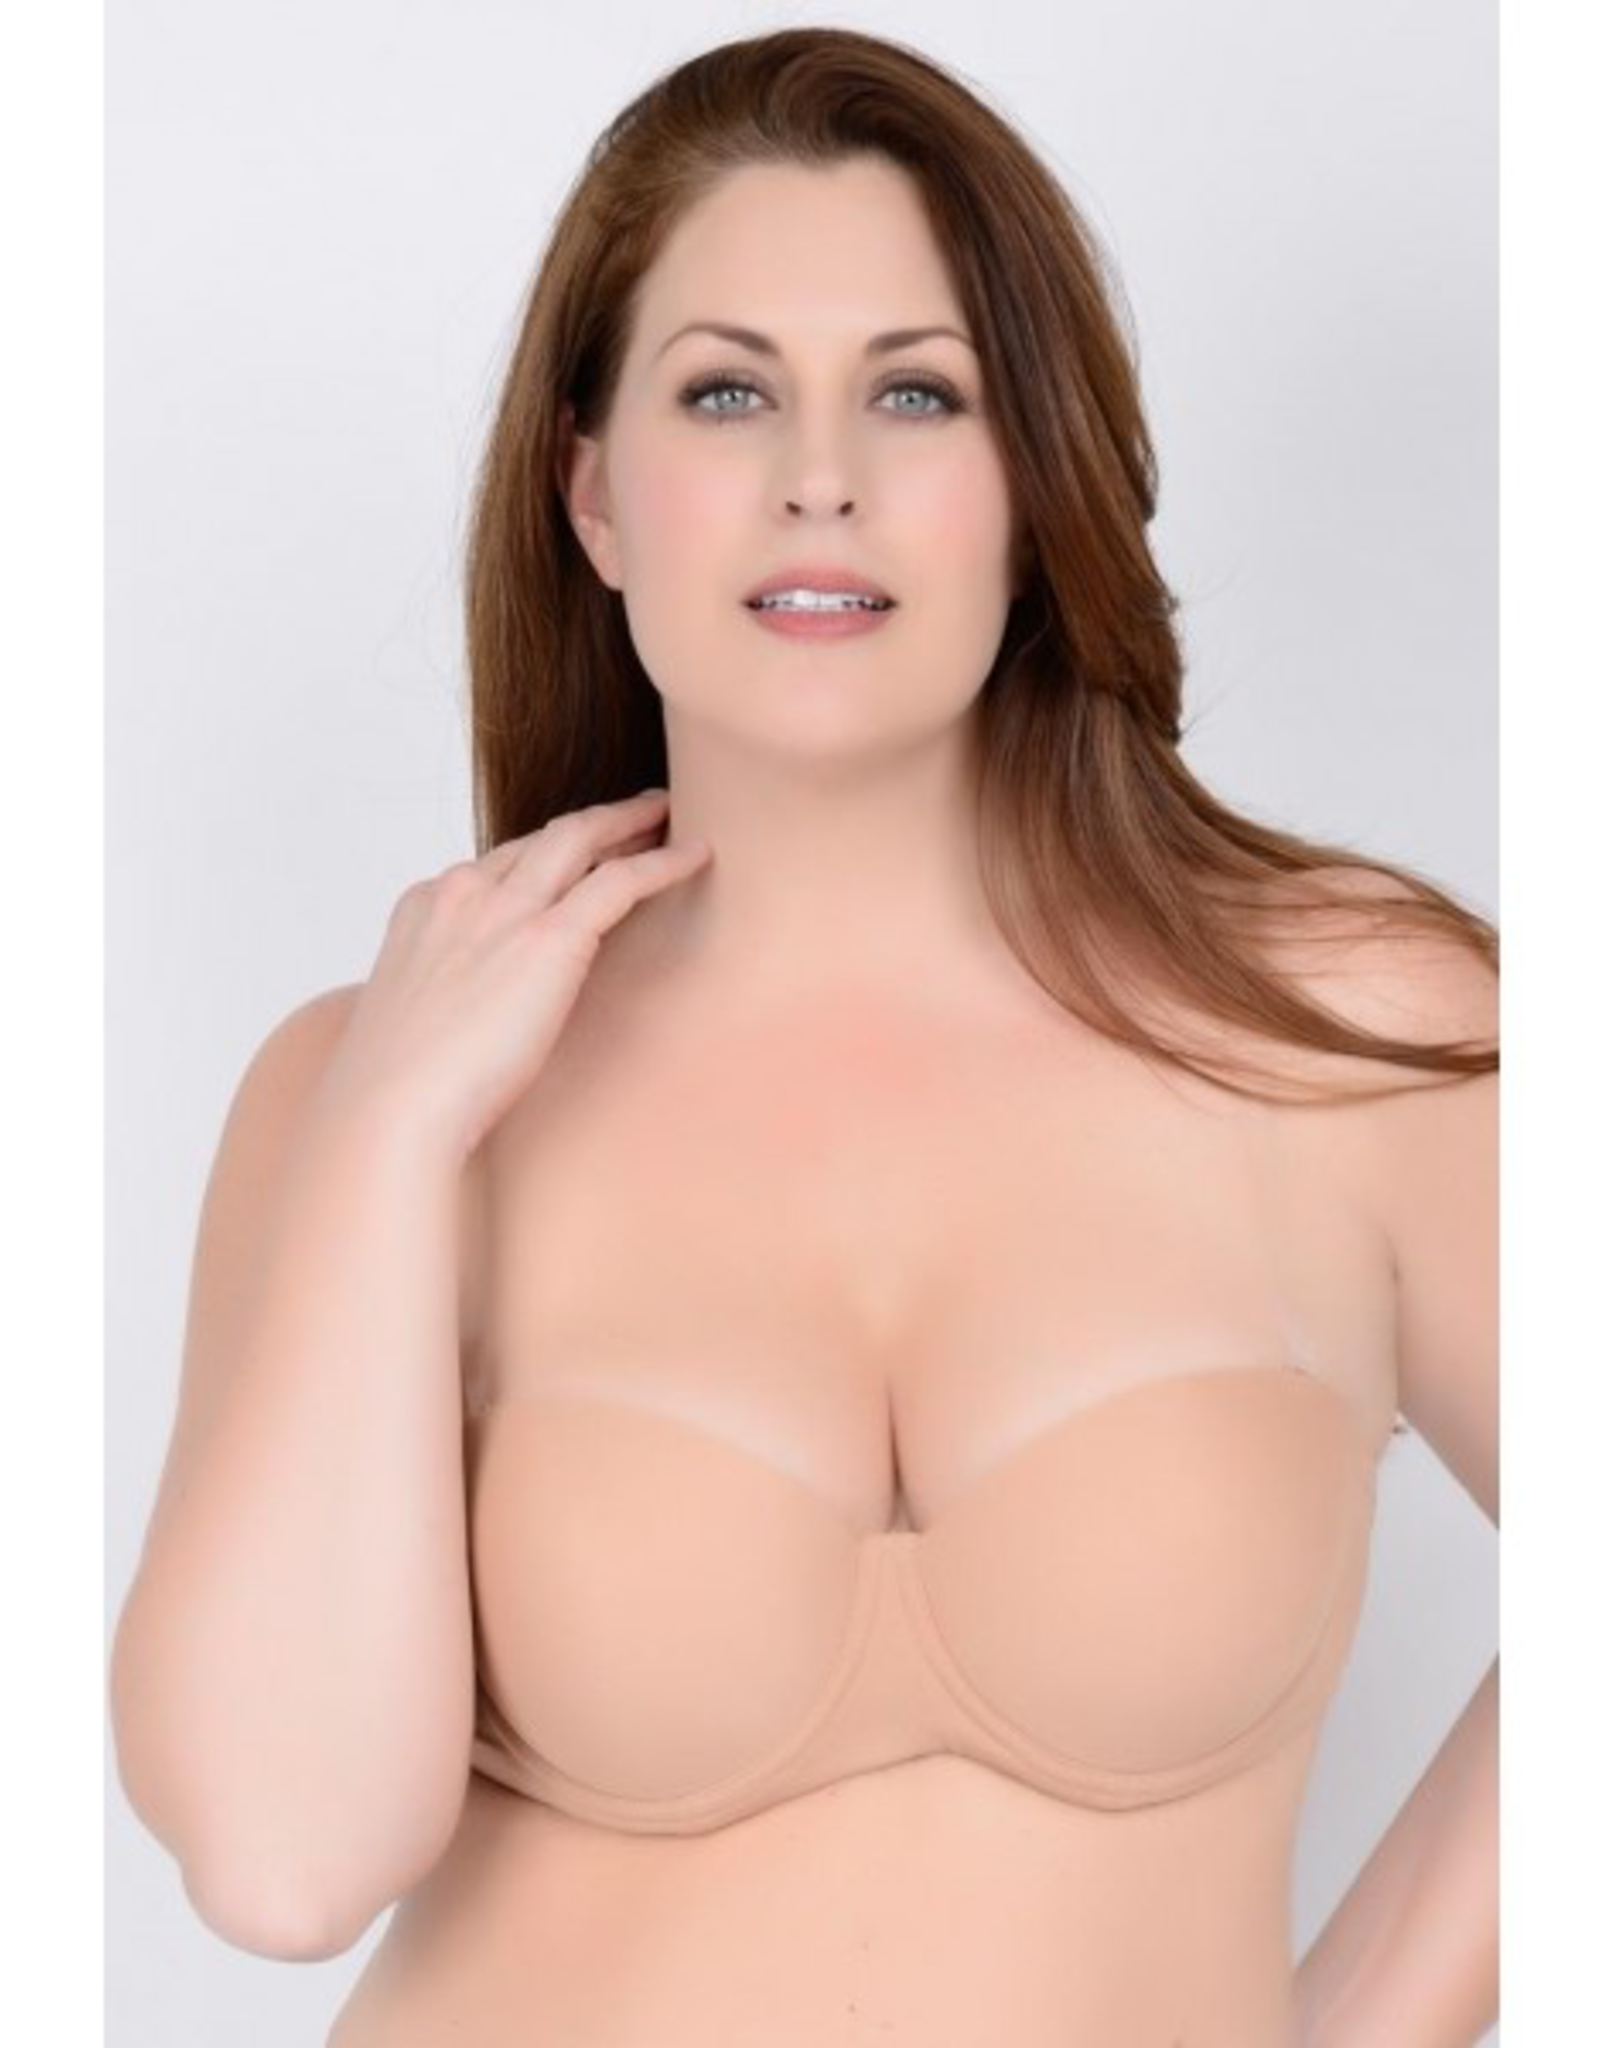 QT Intimates 312 Clearly Hooked Bra Adult